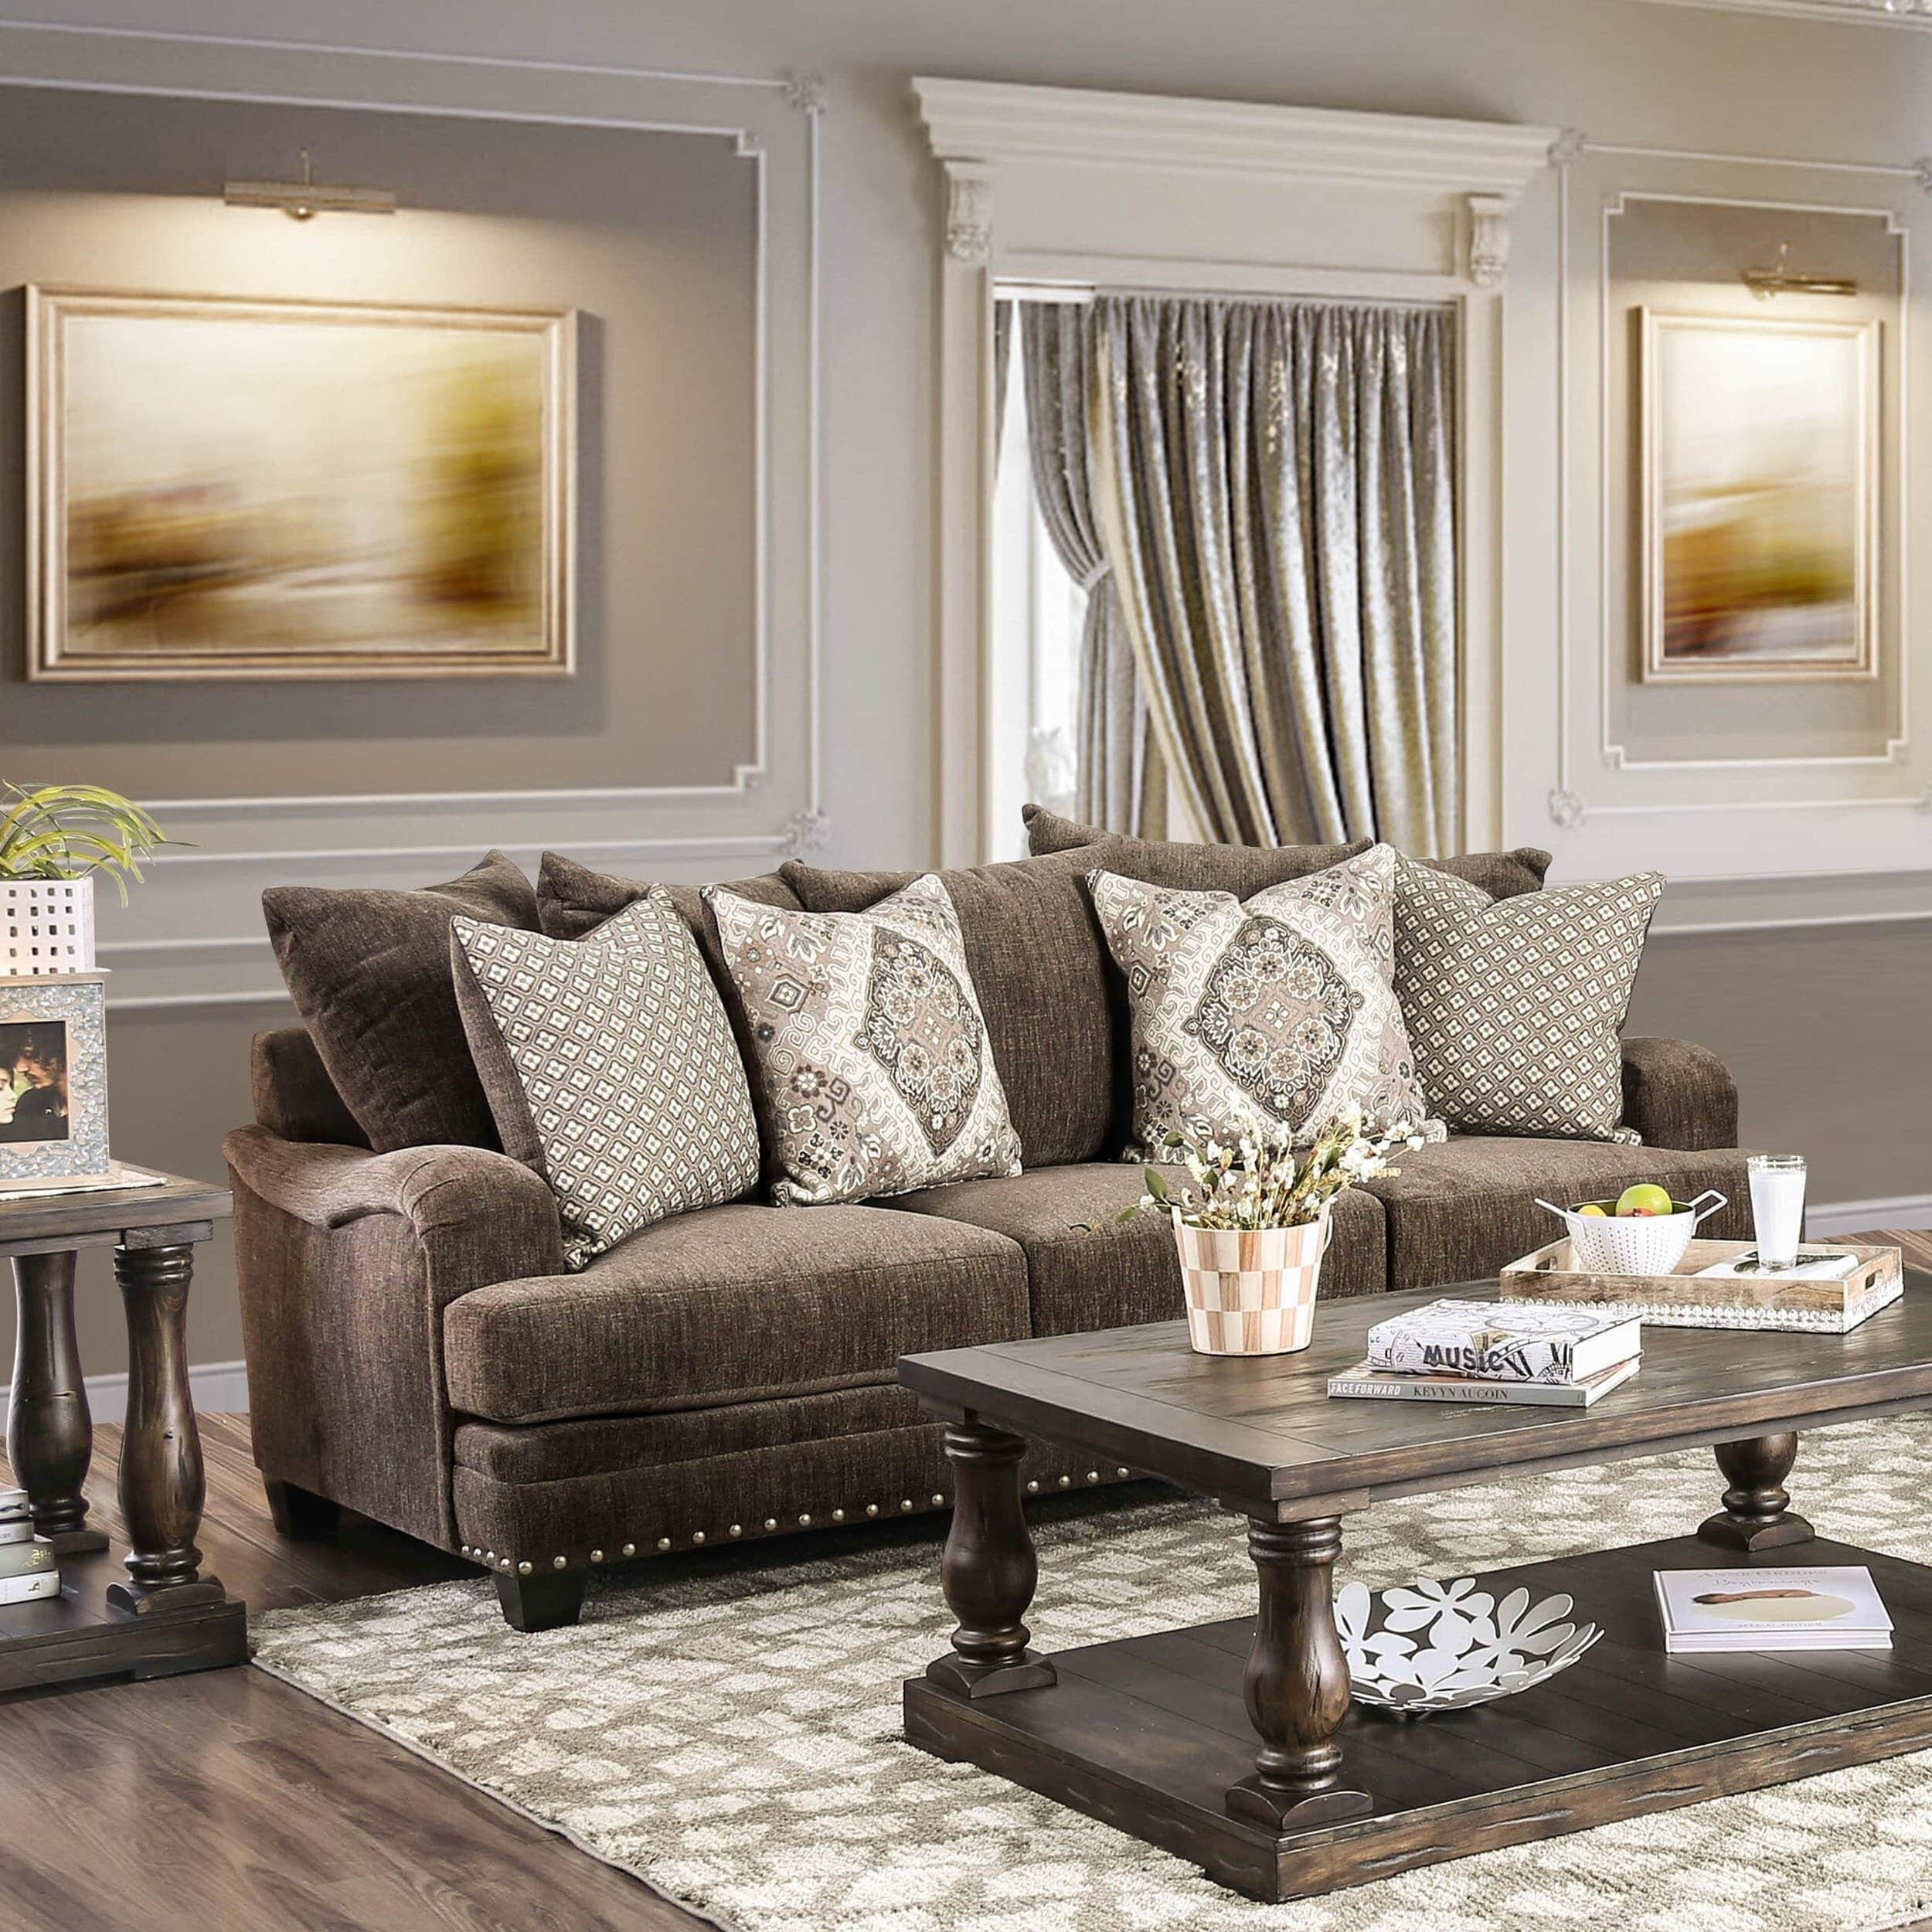 Furniture Of America Vizi Traditional Chenille Upholstered Regarding Sofa With Chairs (View 4 of 15)